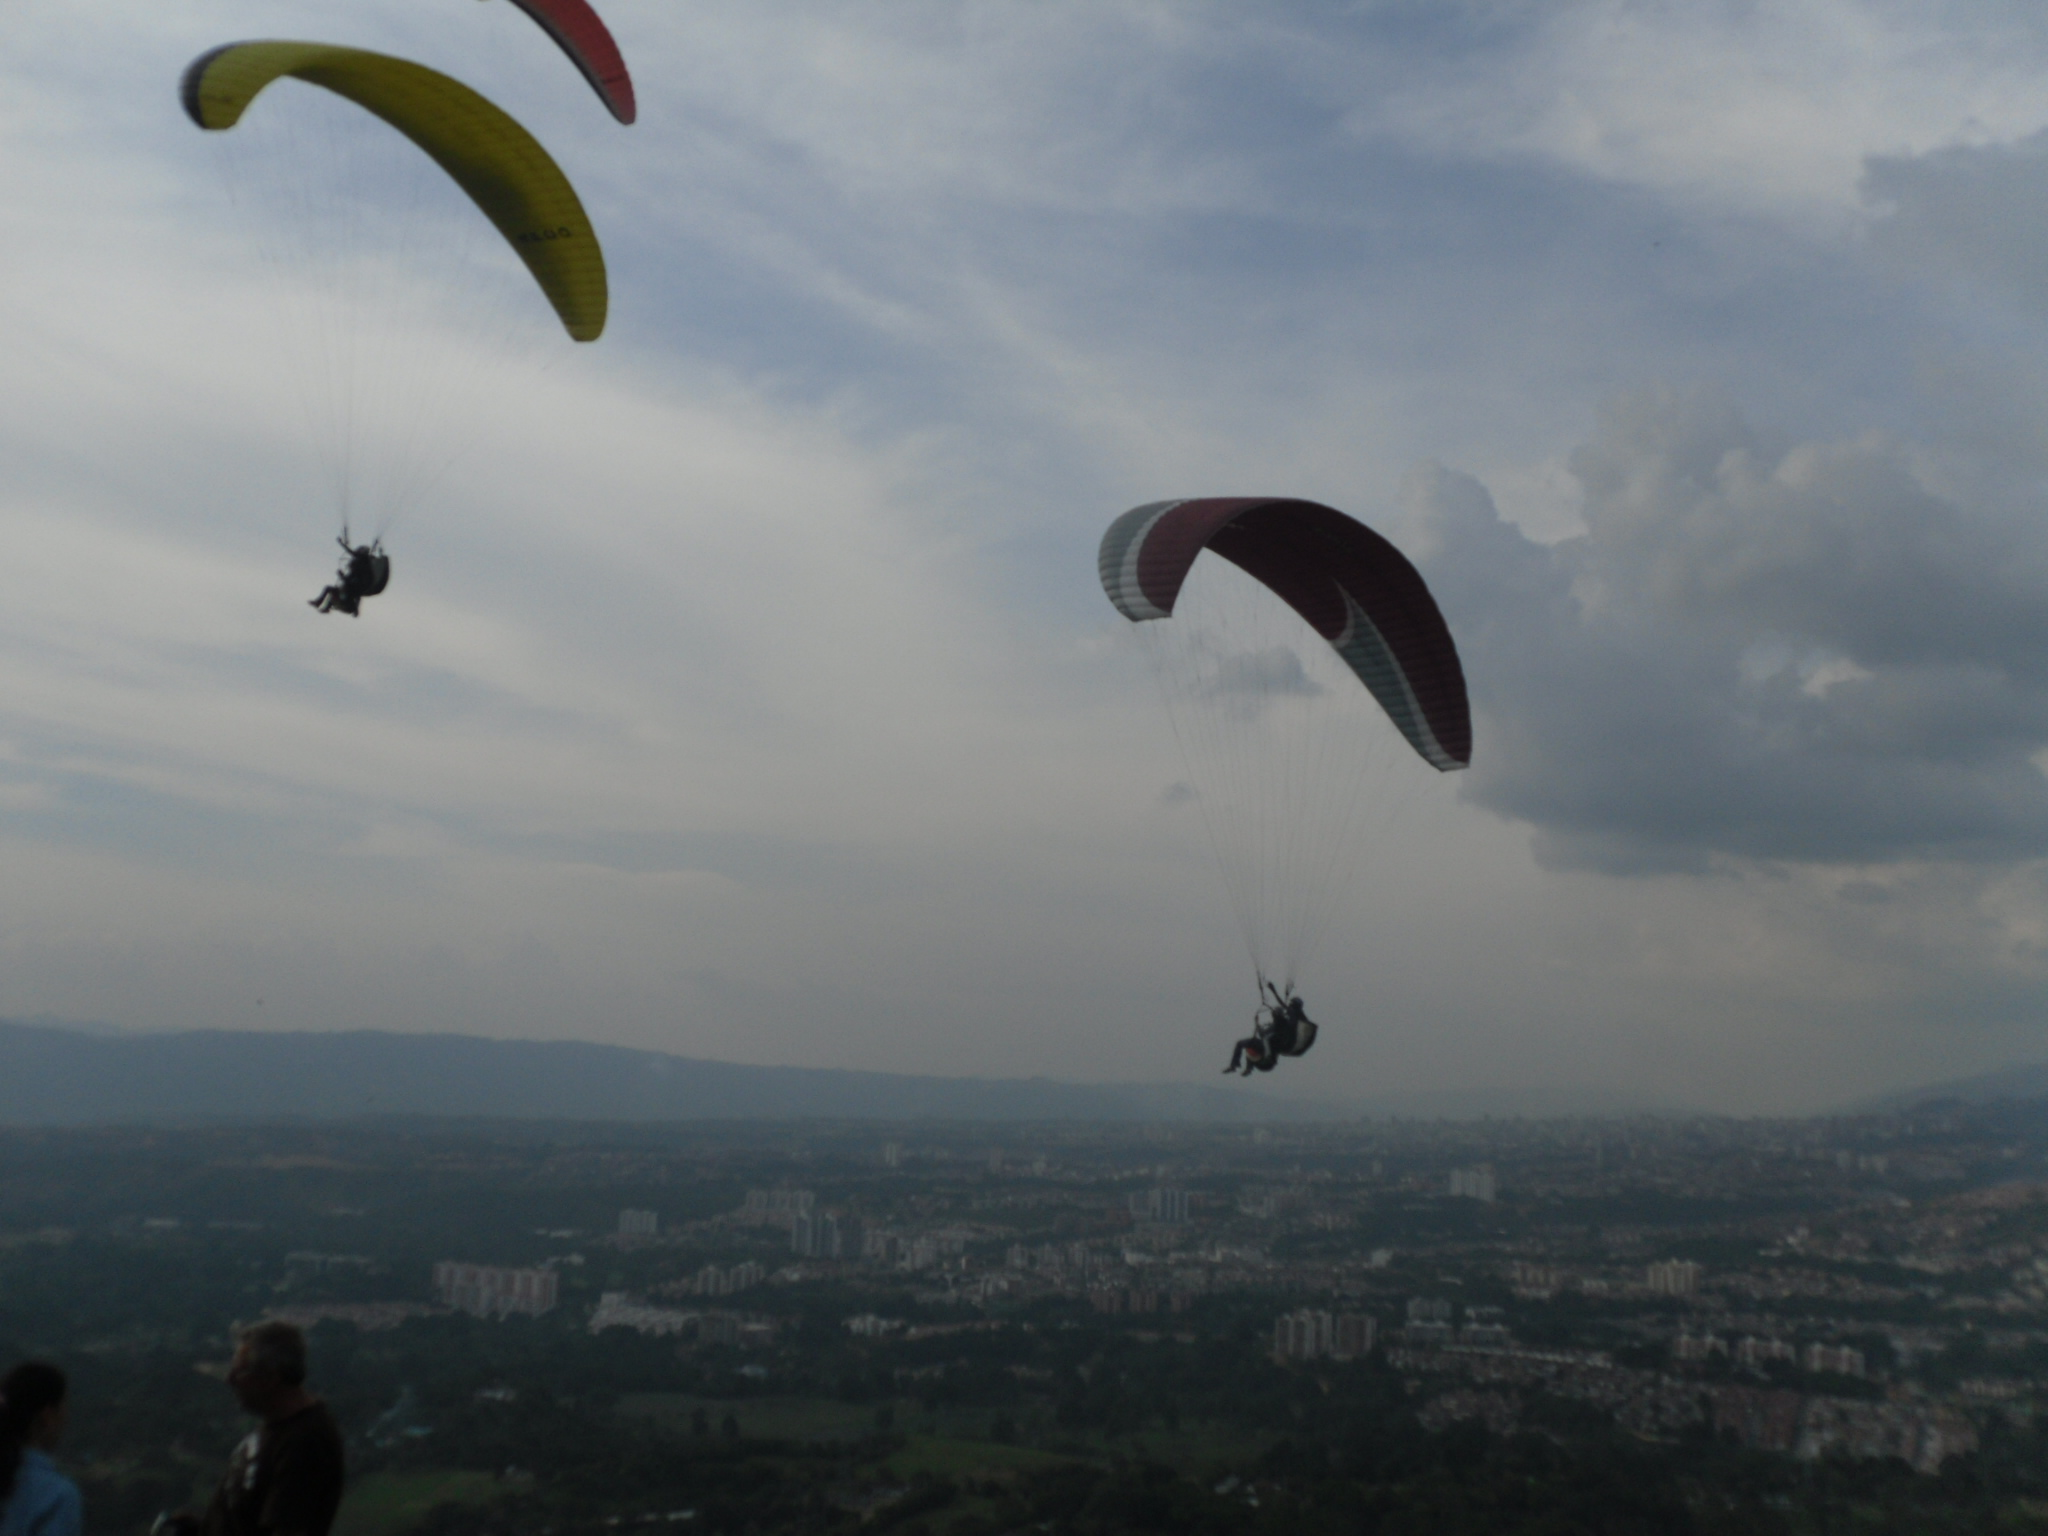 Adventure in Colombia-Paragliding near Bucaramanga